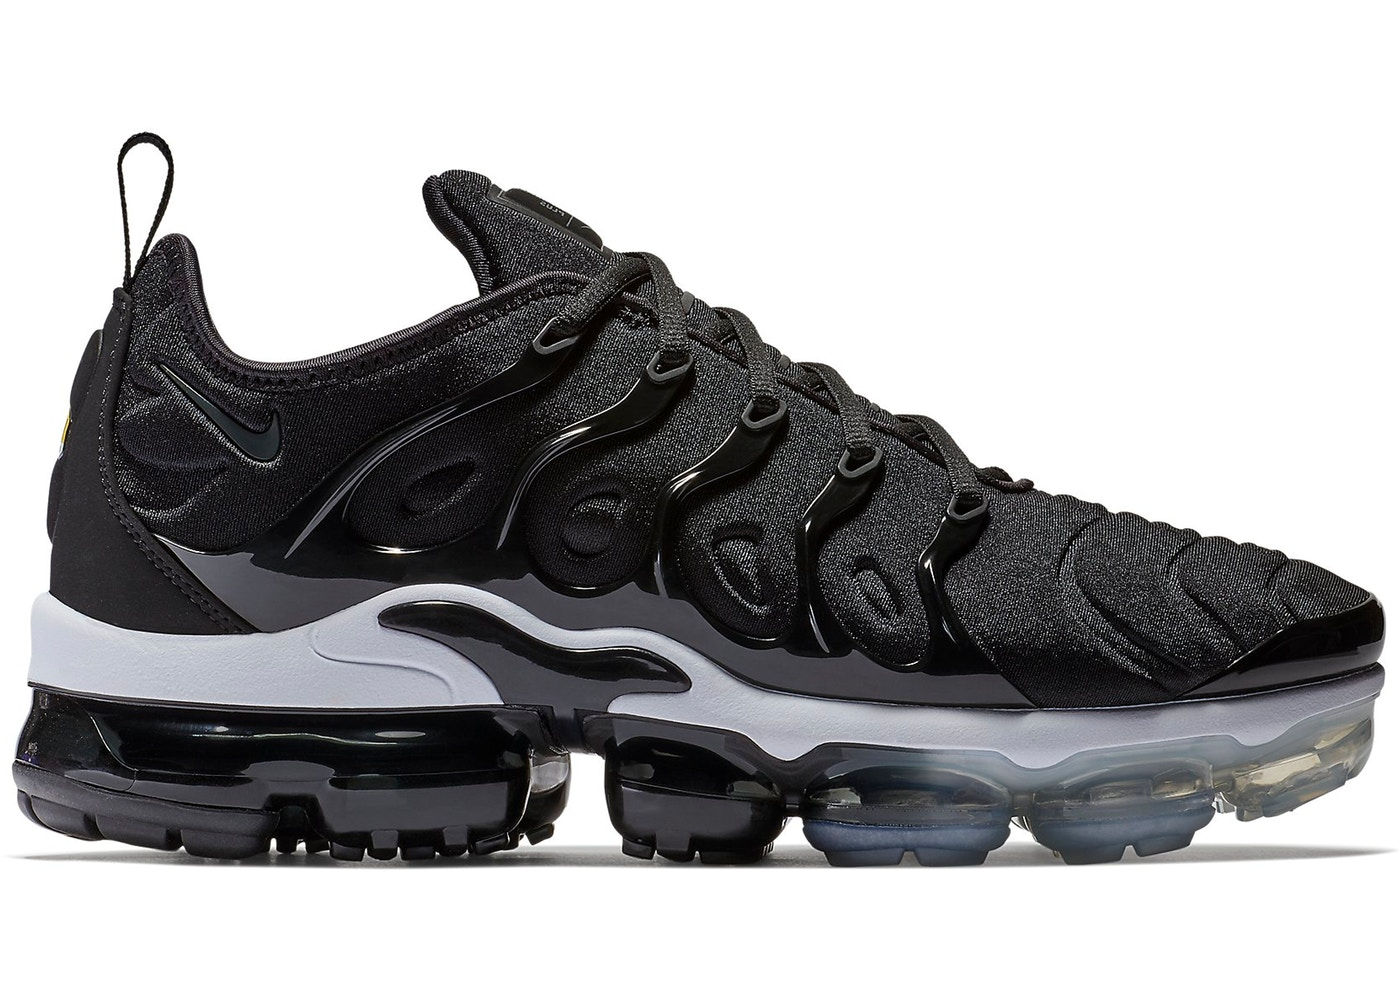 9a9a07b8d5a227 nike air vapormax black and white